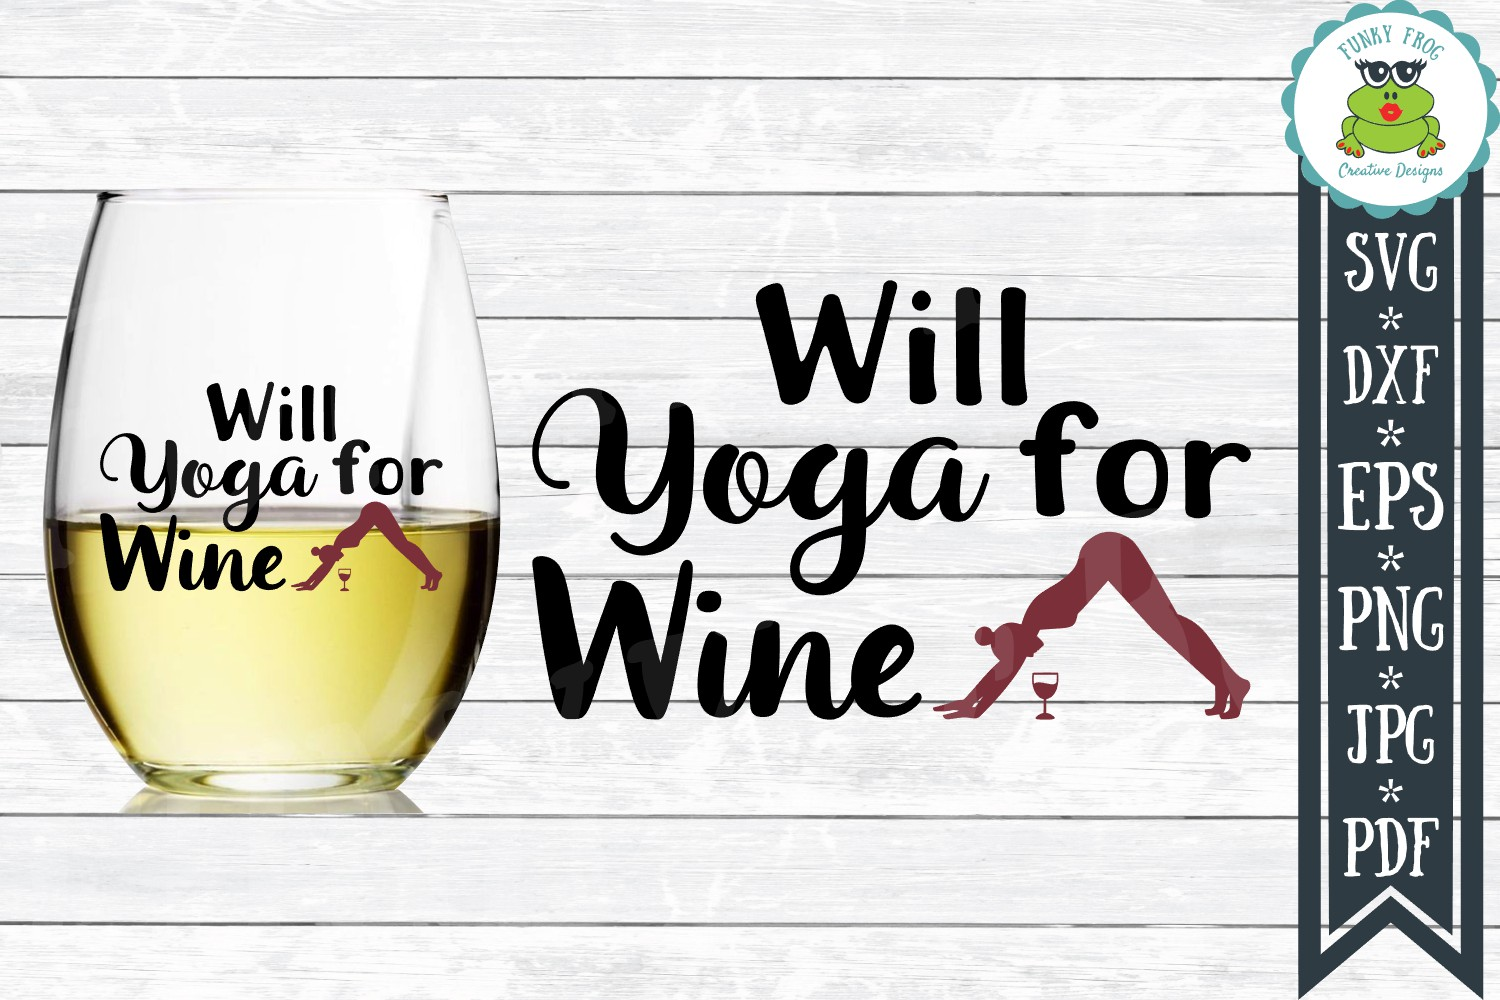 Will Yoga for Wine - SVG Cut File for Crafters example image 1